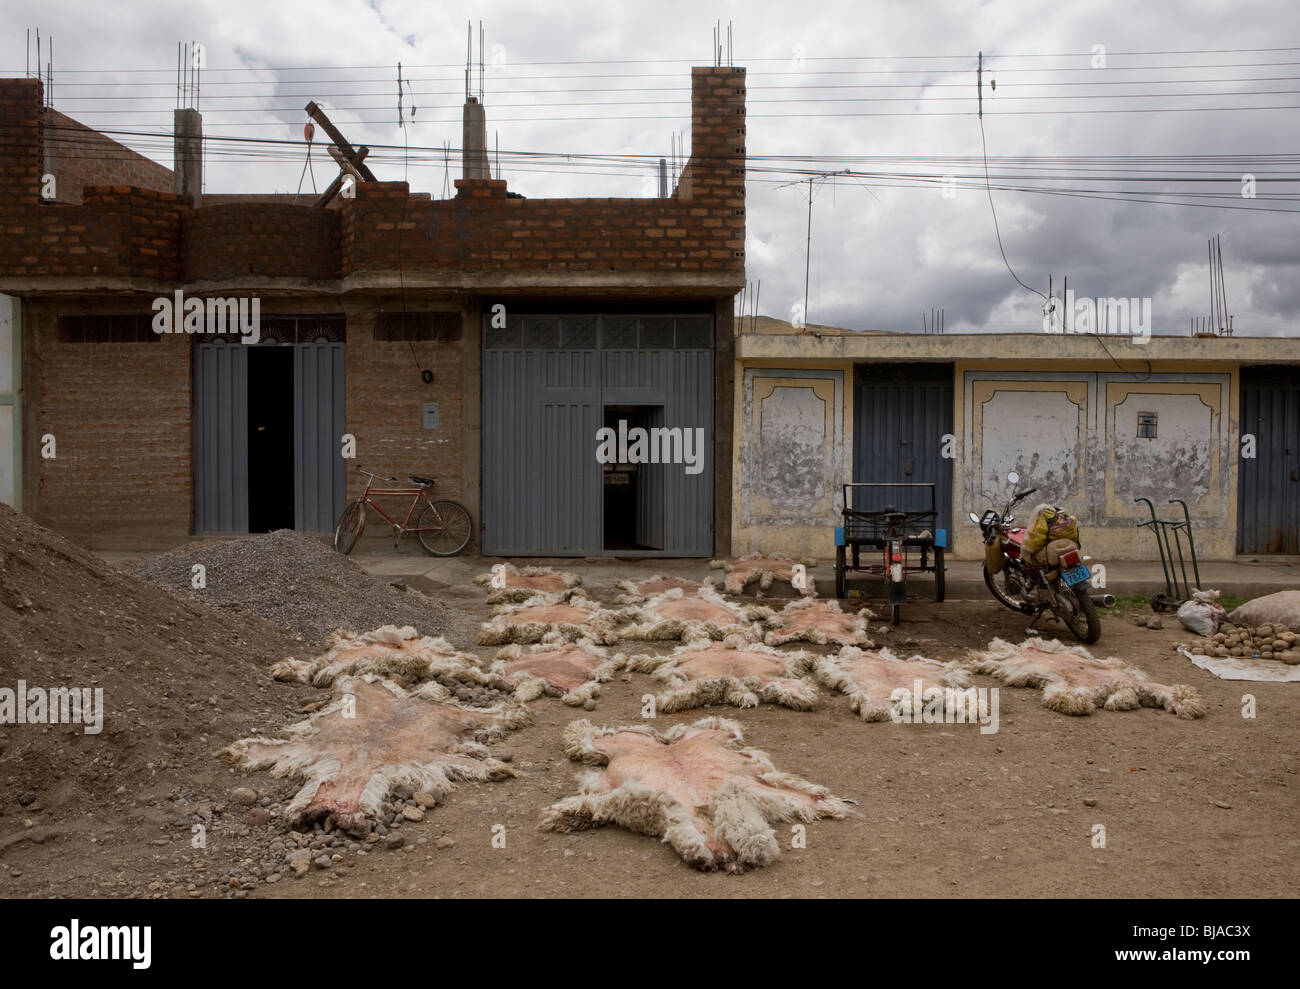 Llama skins lied out to dry in peruvian village - Stock Image